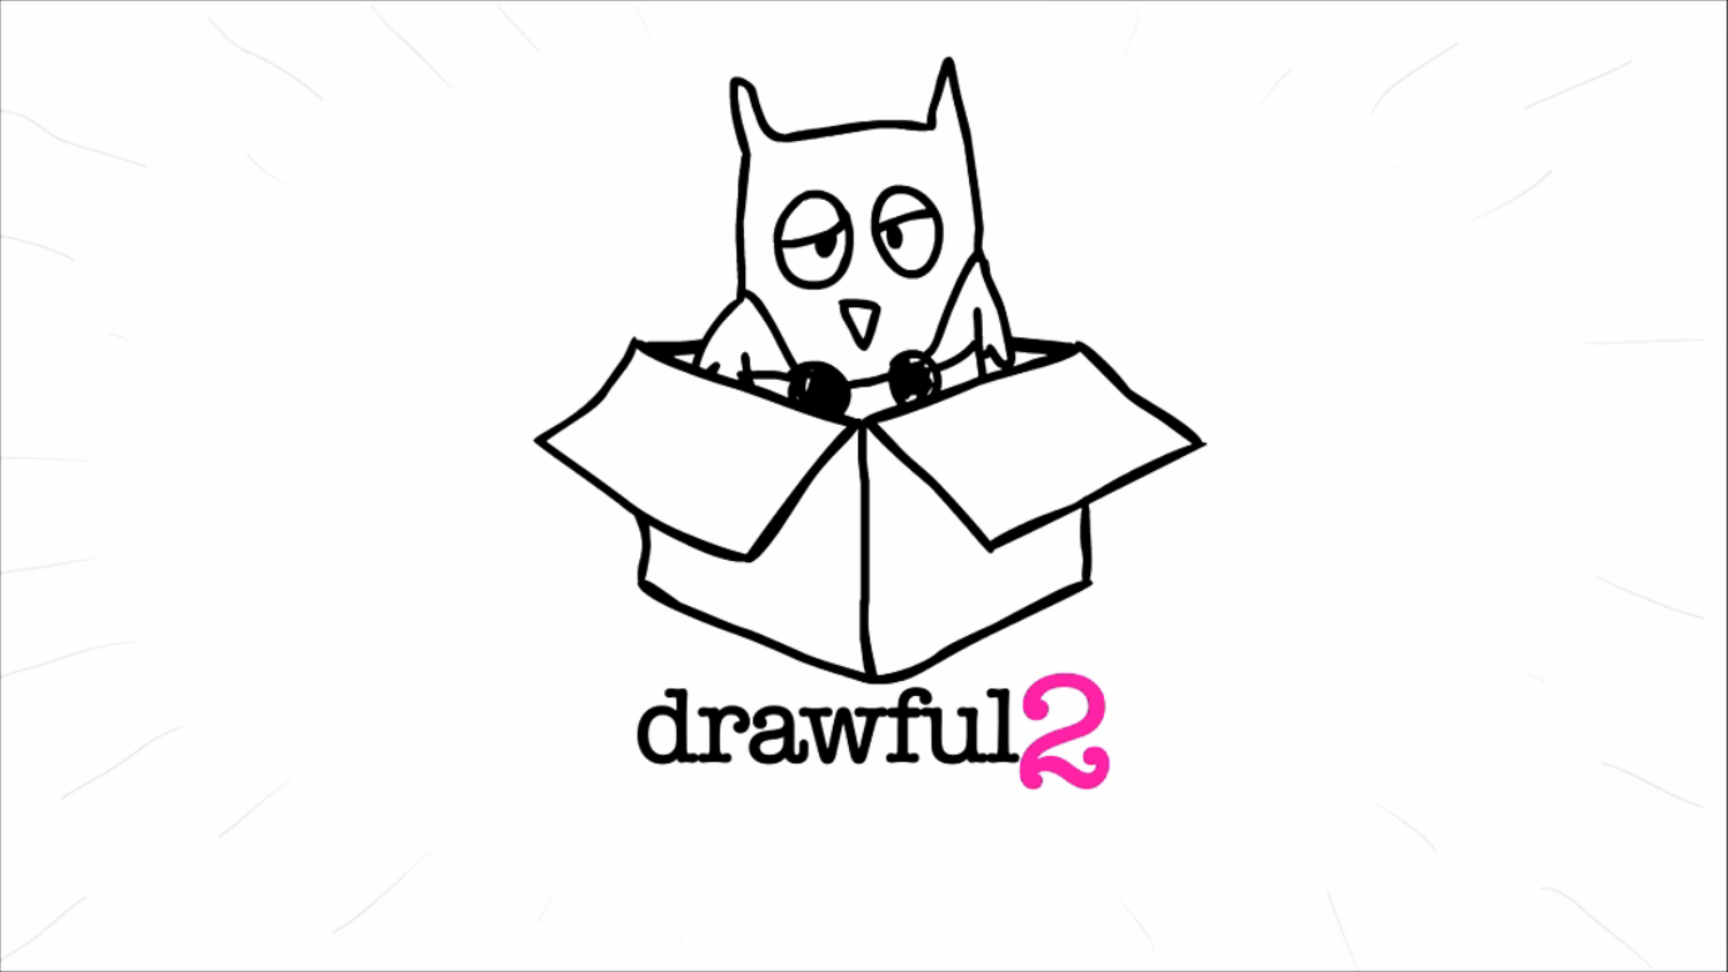 Drawful 2 Review